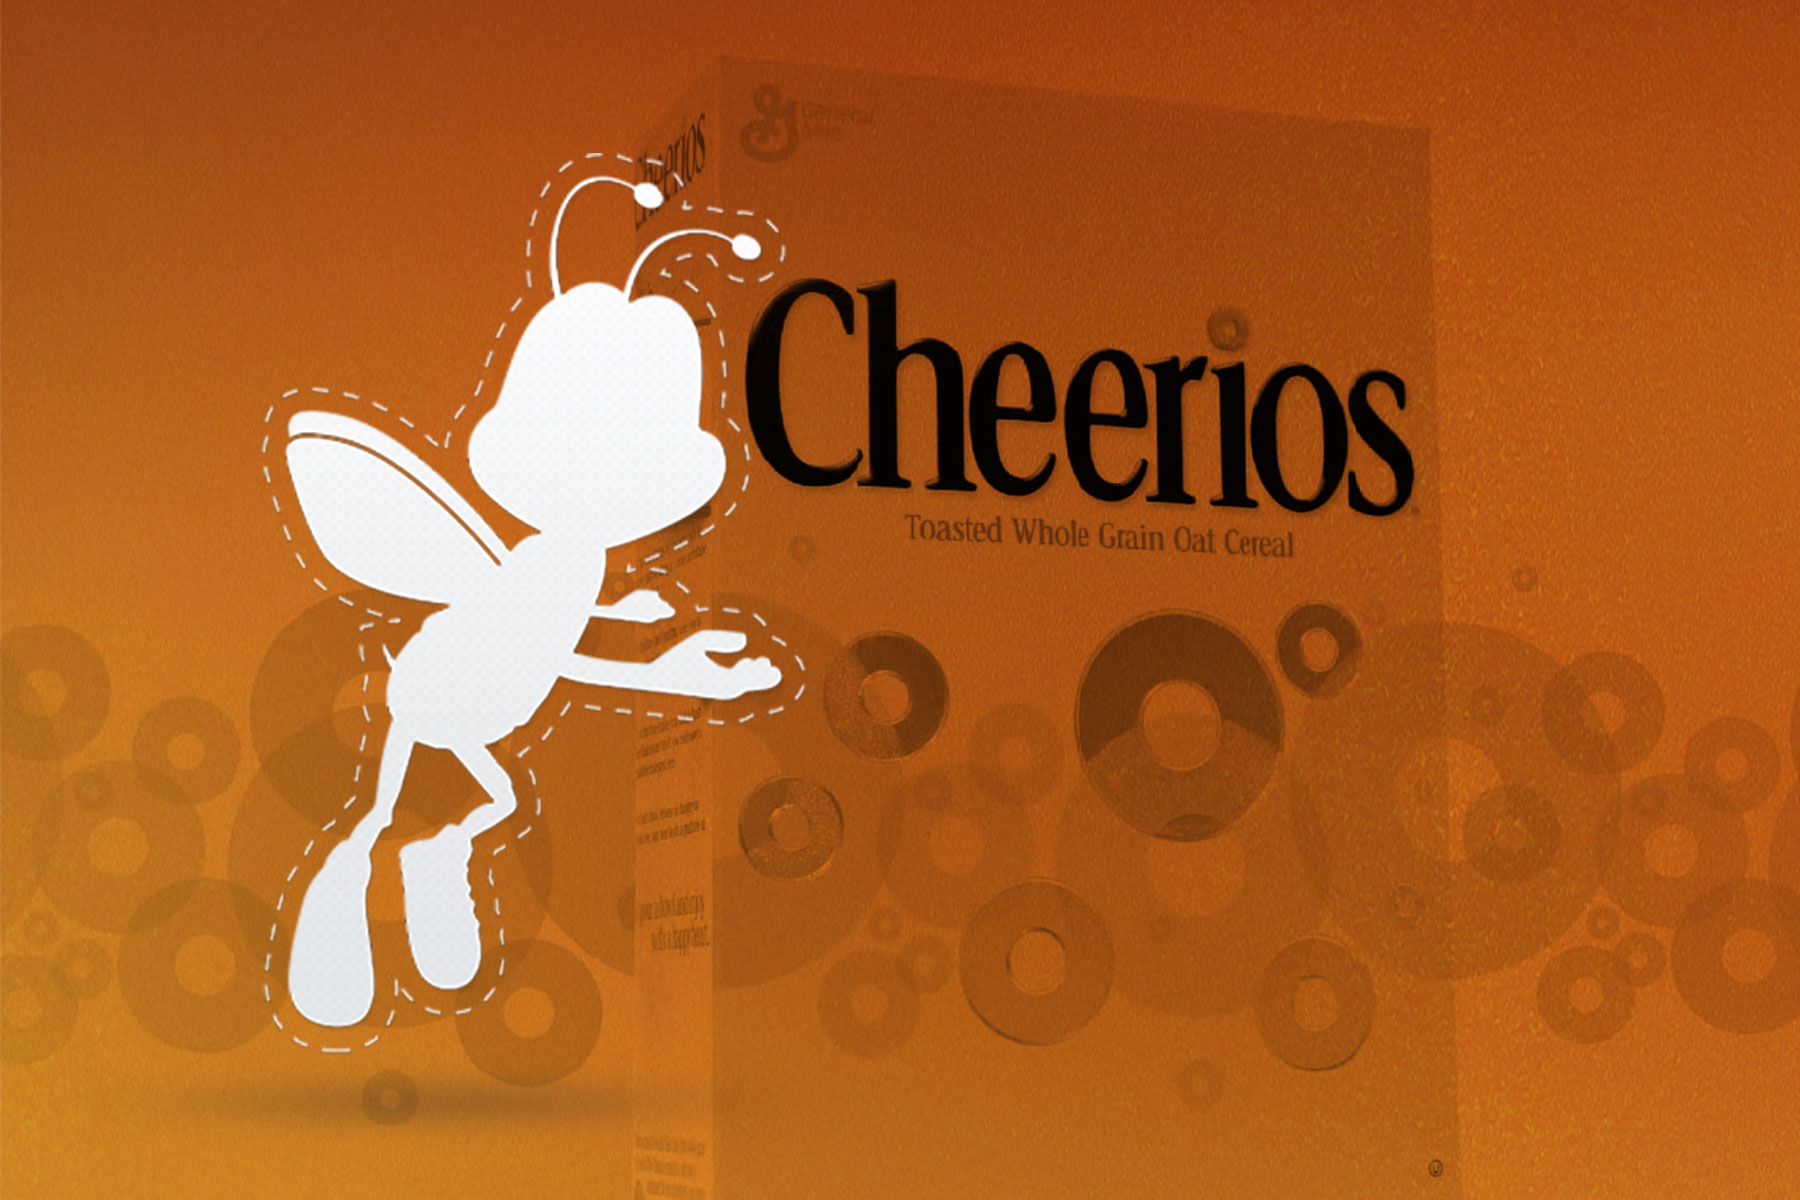 Cheerios giving away wildflower seeds to #BringBackTheBees